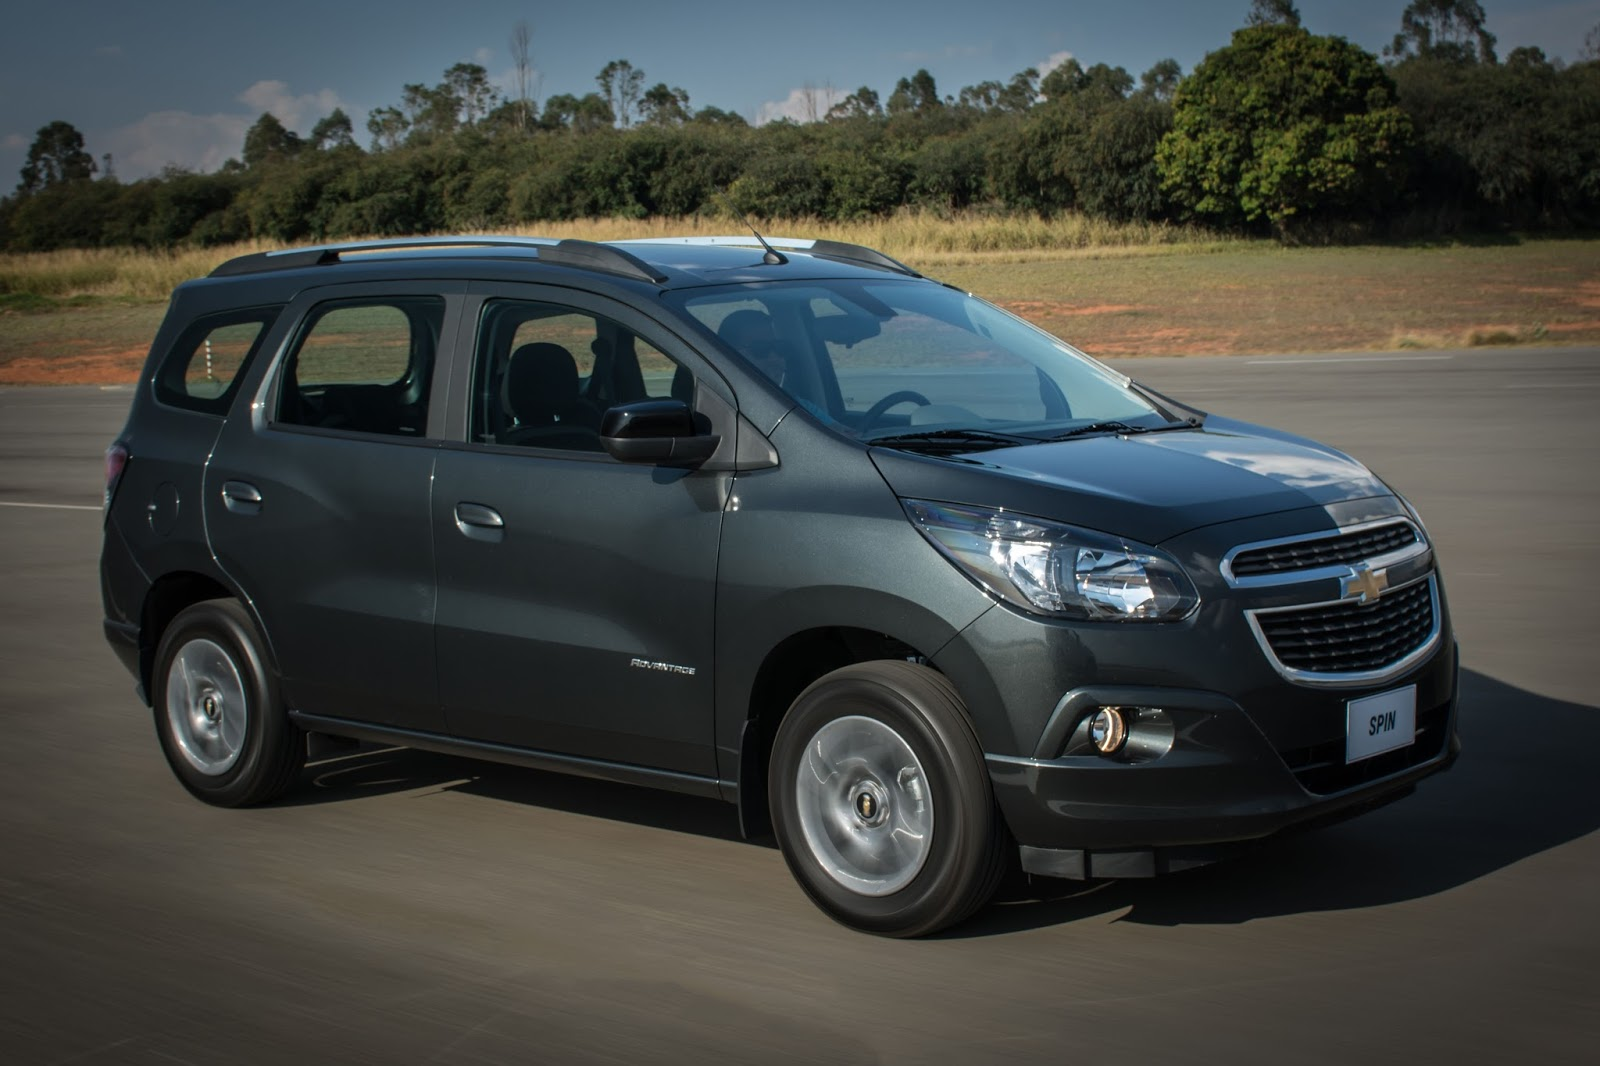 2017 Chevrolet Spin 2017 expands lineup and is 30% more economical on testimoni chevy spin, car spin, mobil spin, hummer spin, honda spin,